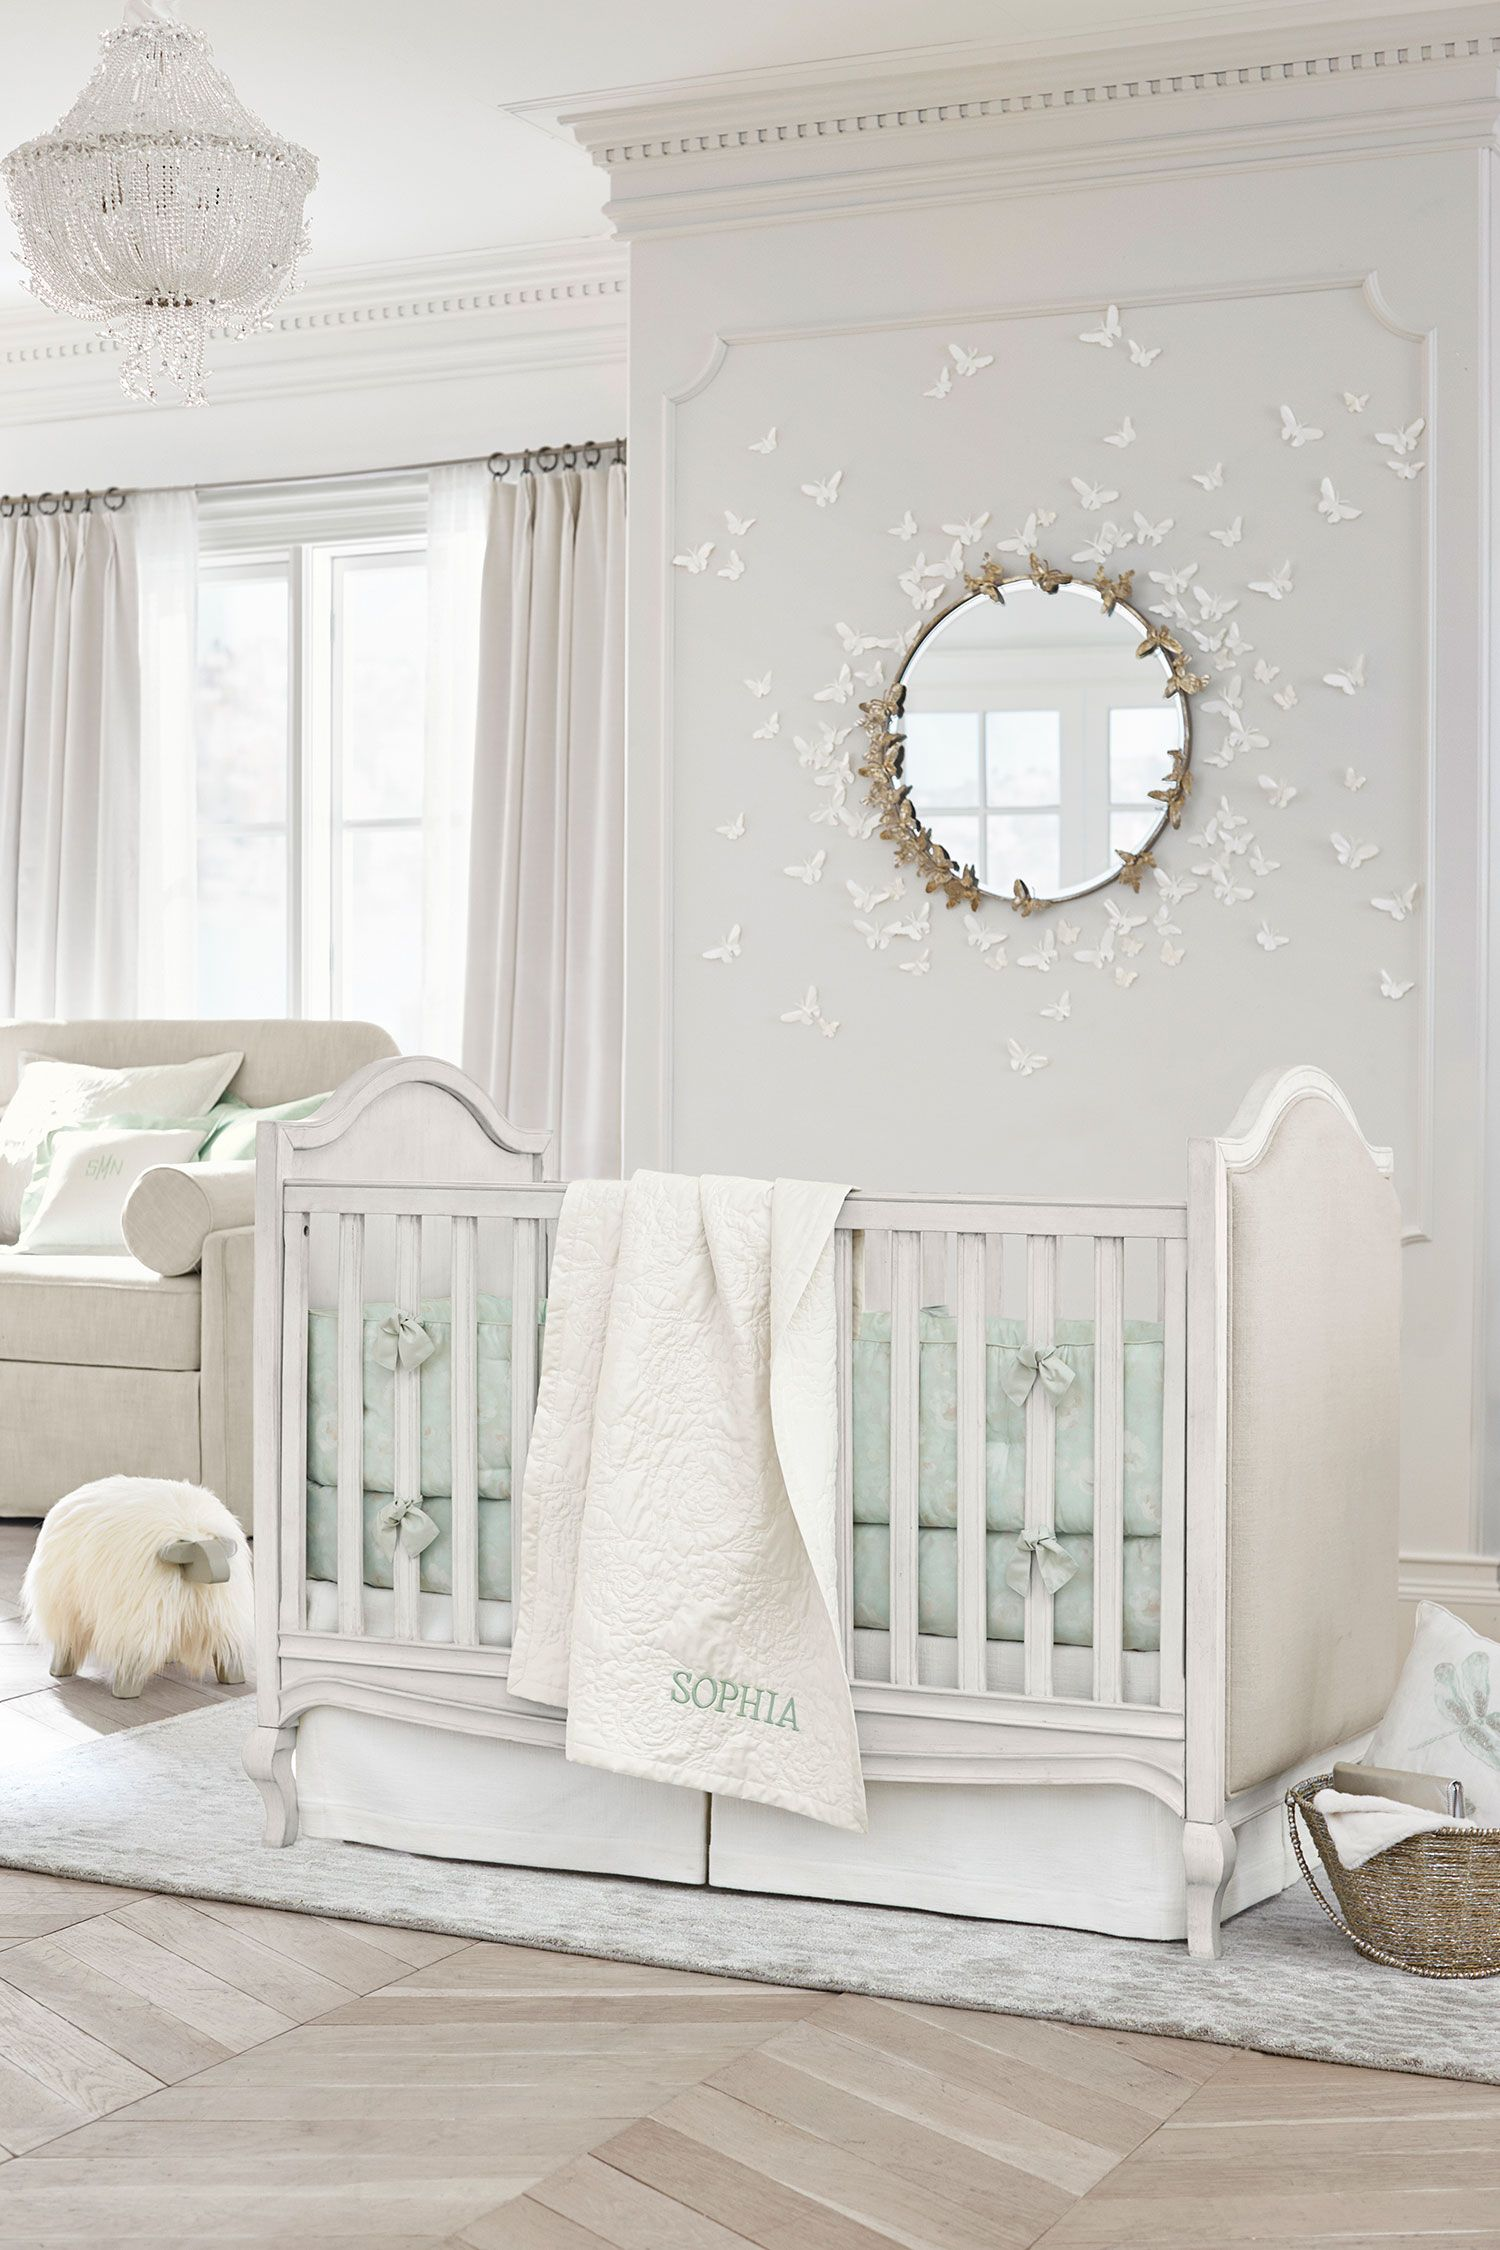 Interview: Monique Lhuillier On Her Collection for Pottery Barn Kids ...